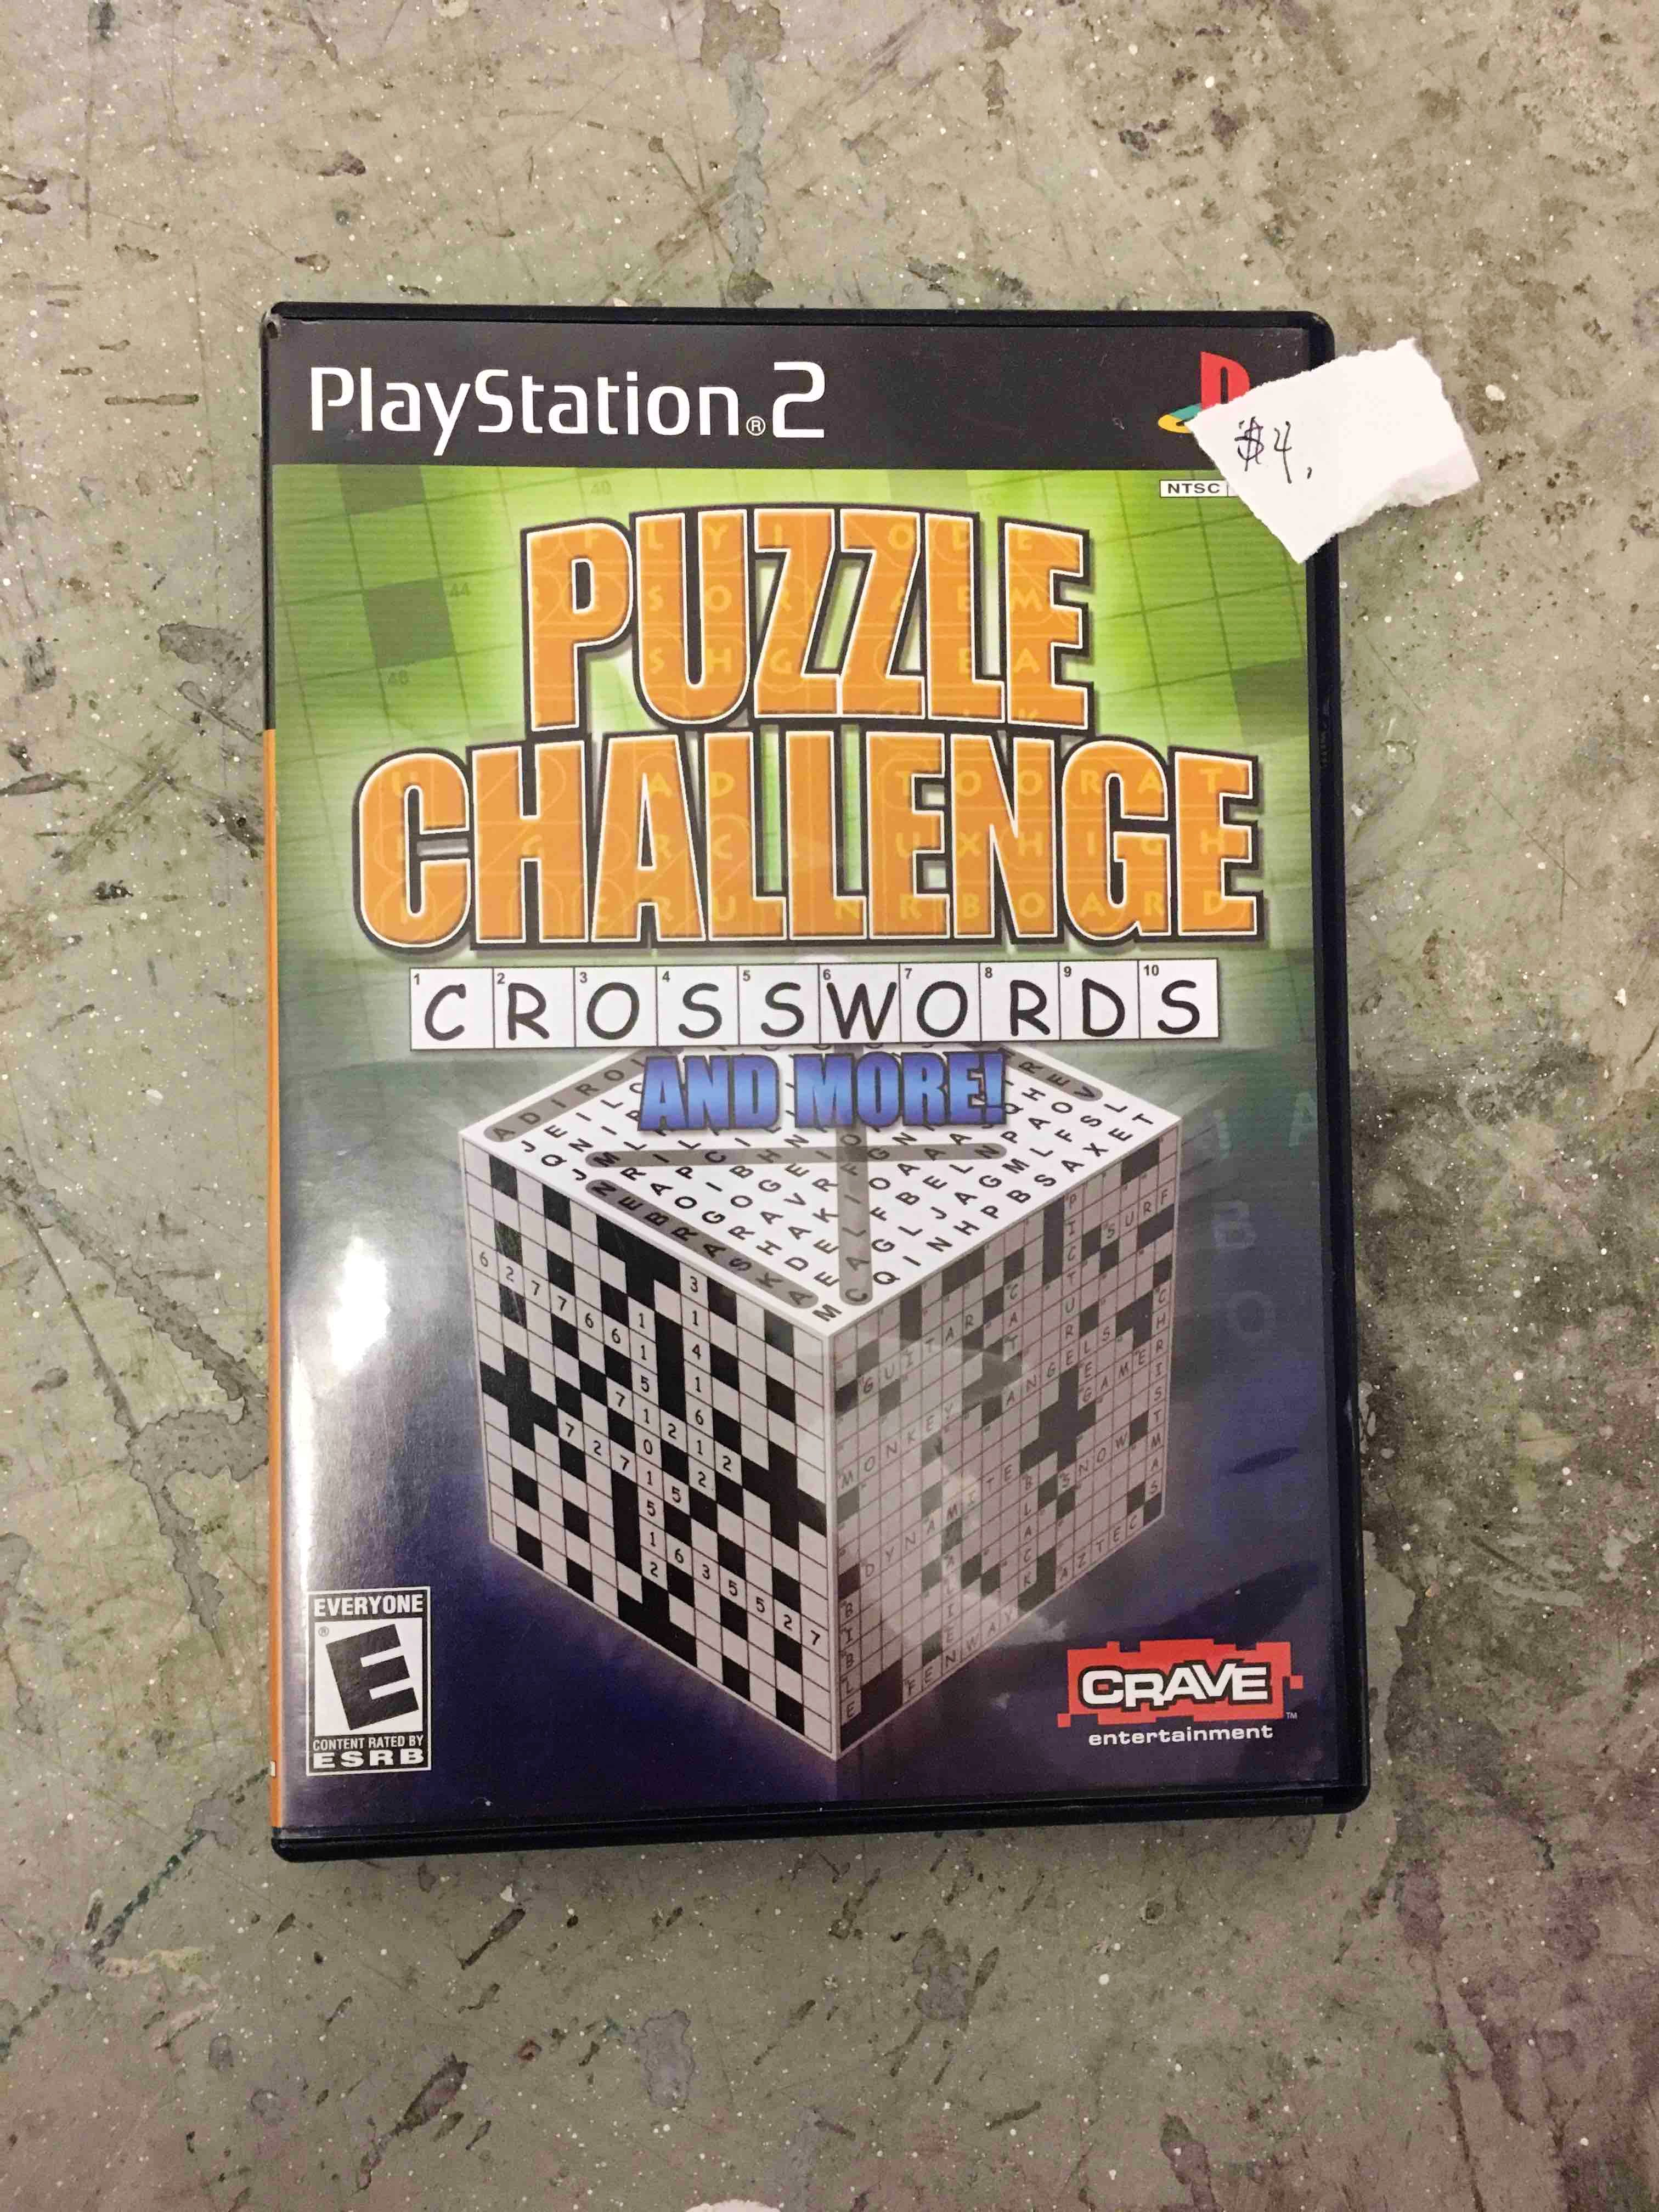 Puzzle Challenge PS2 game